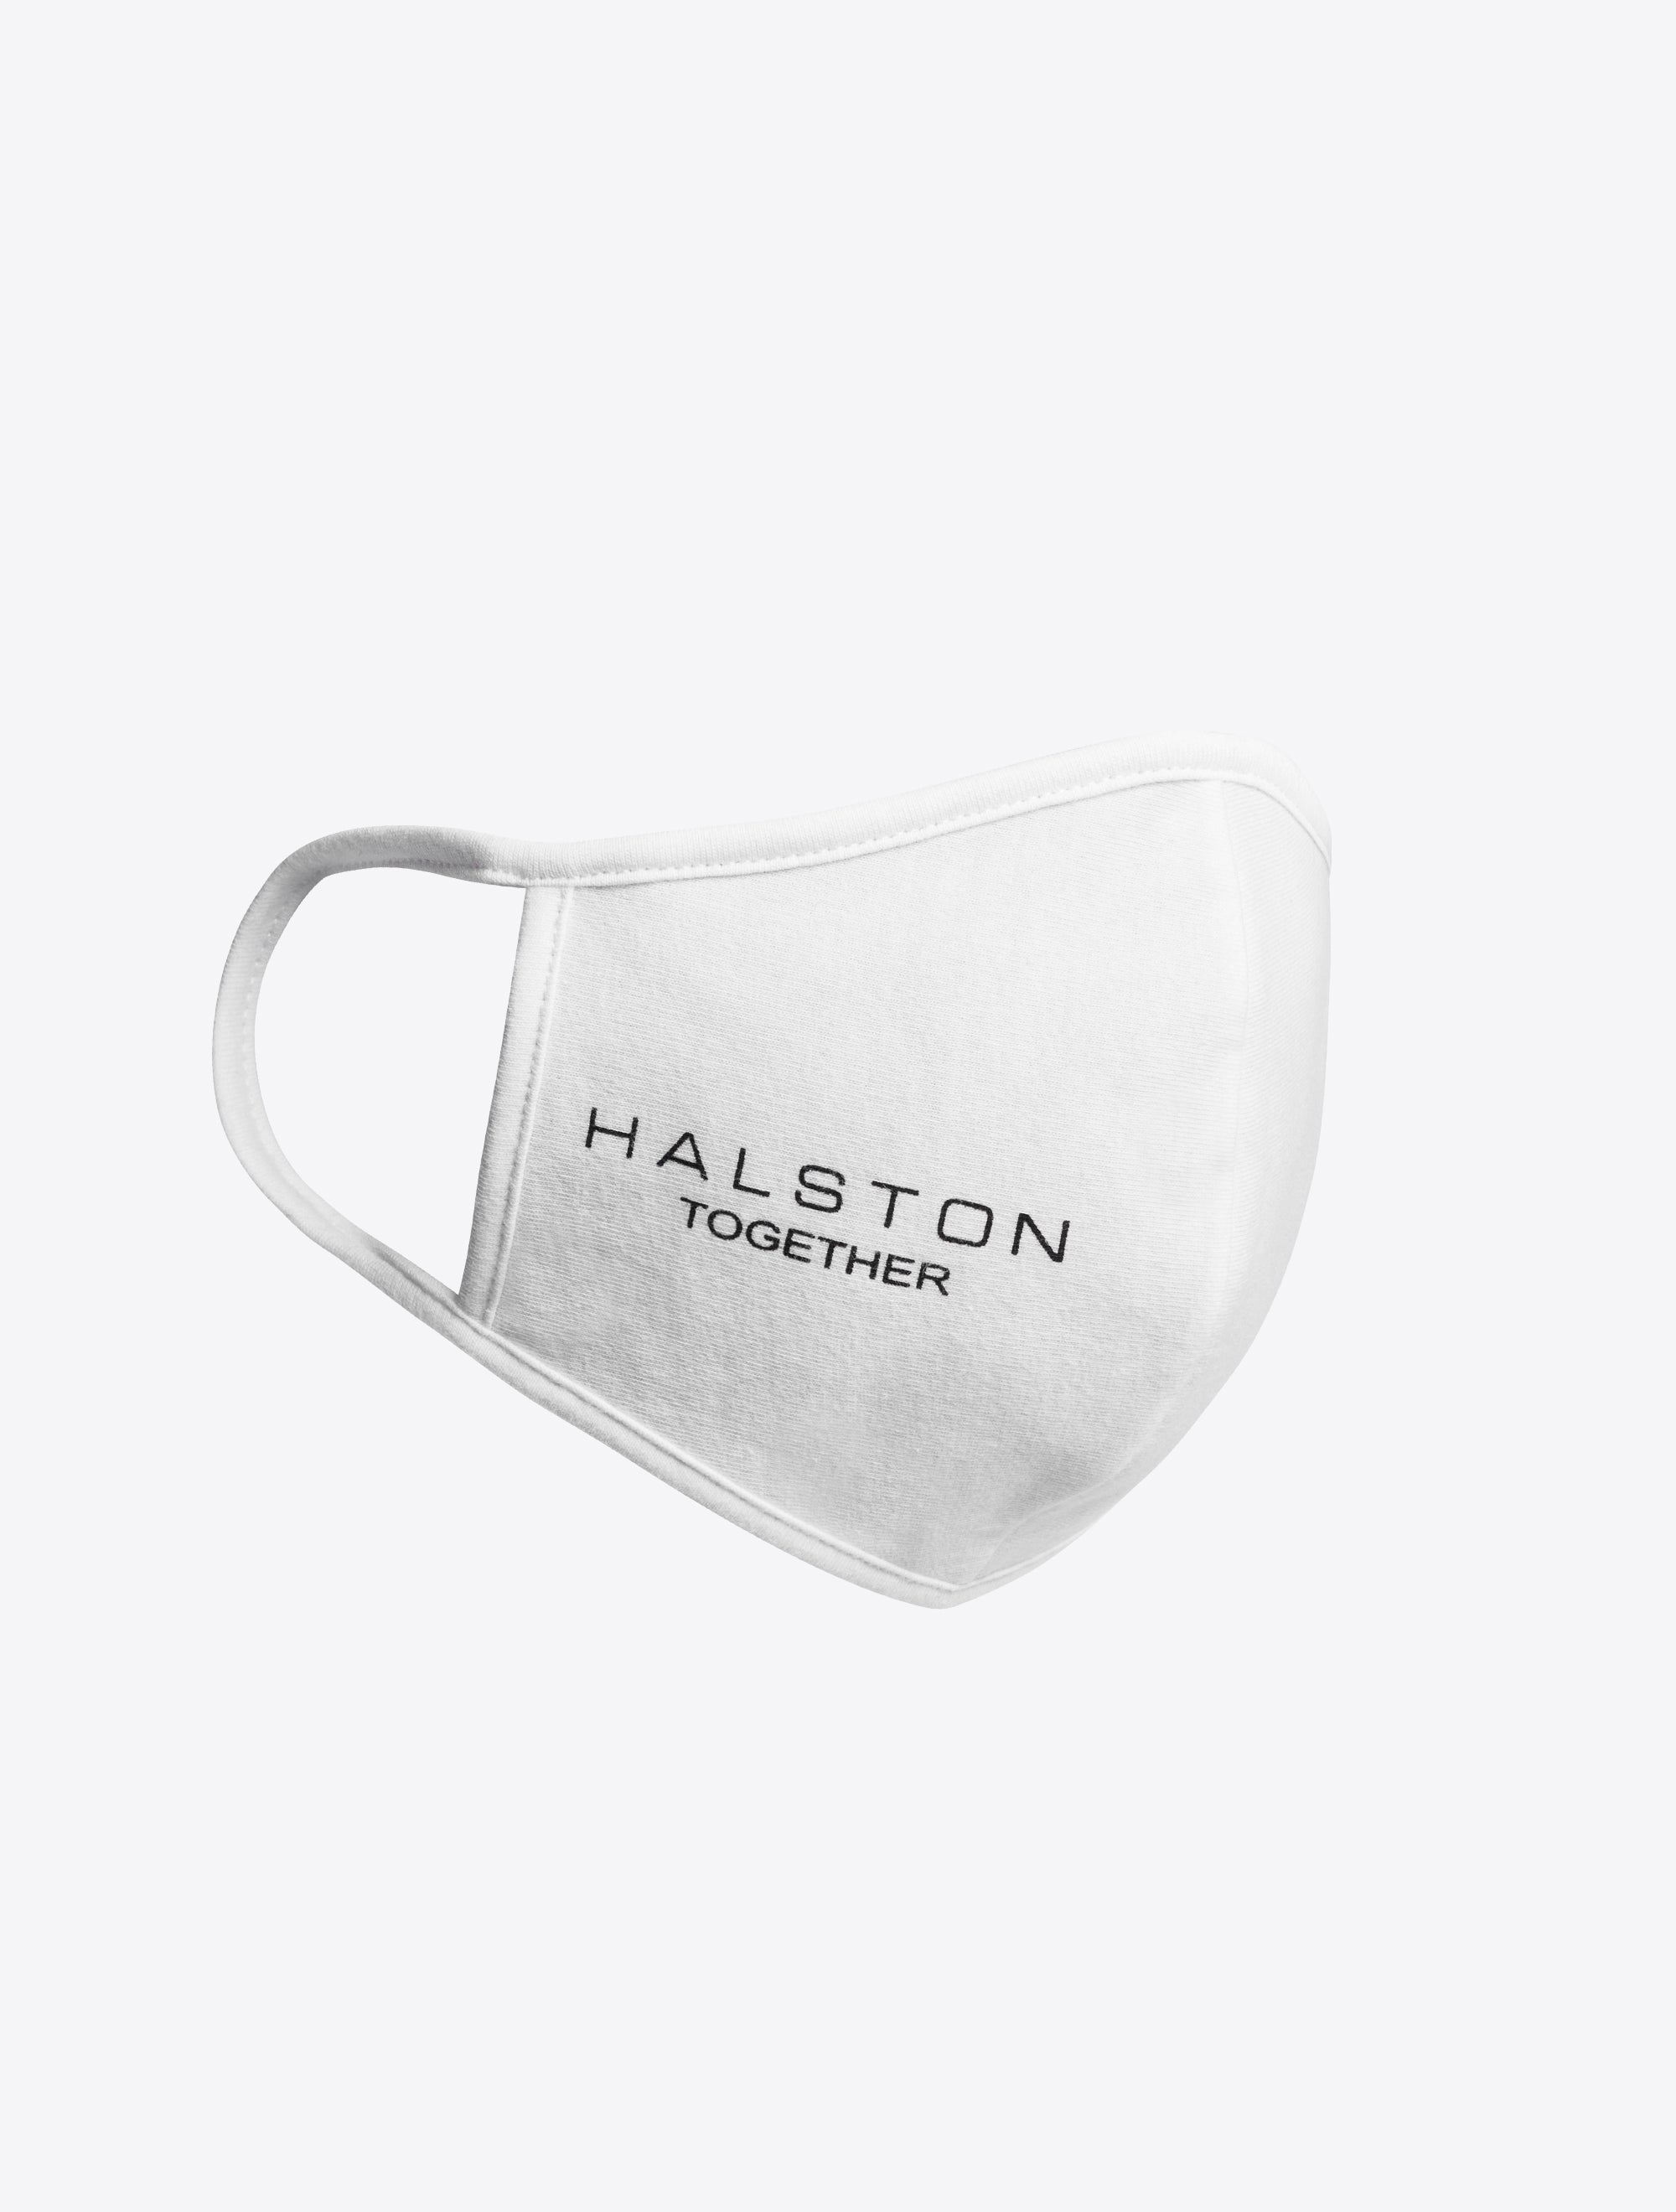 Halston Together Facemask - White